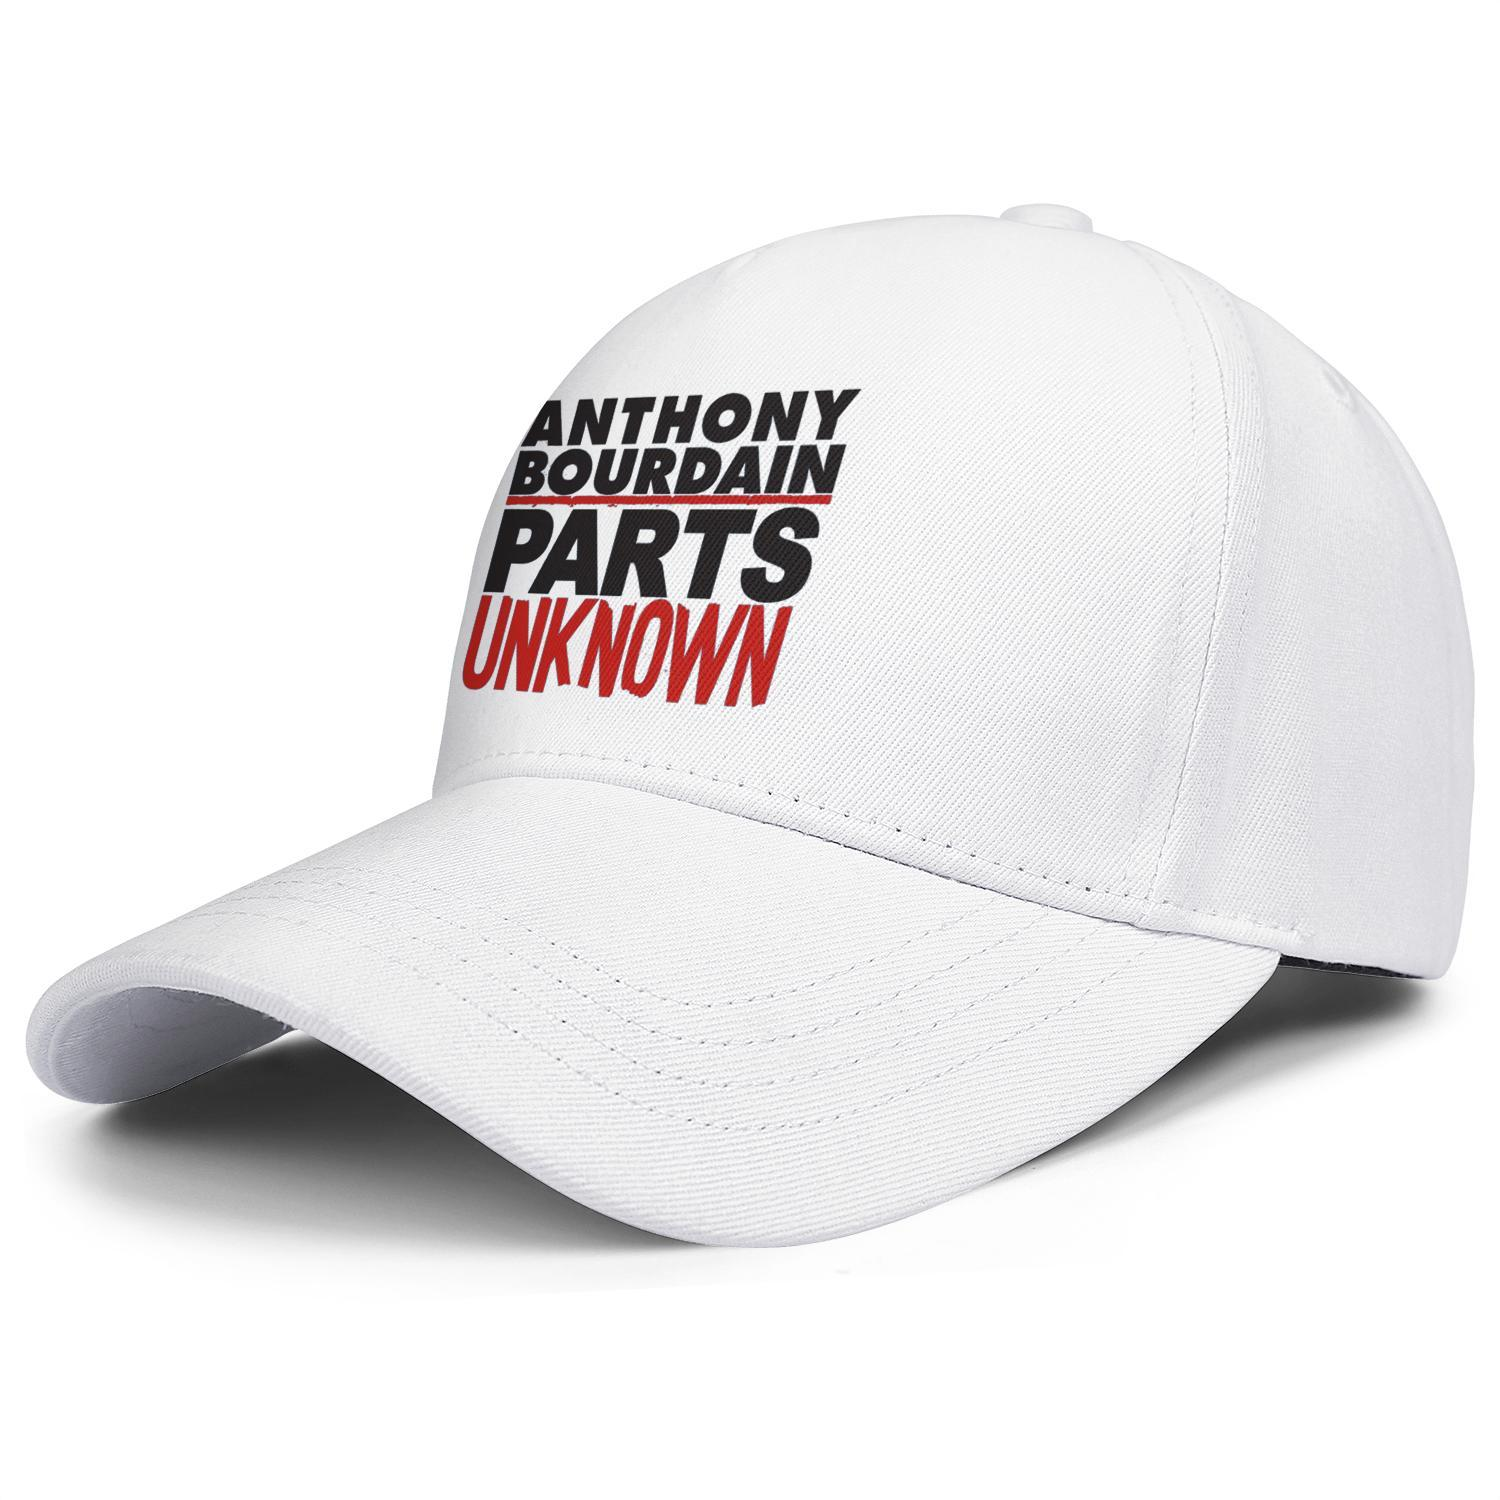 77602d65 Anthony Bourdain parts unk nown white Womens Mens snapback hats adjustable  baseball cap customize your own fashion Soft hat